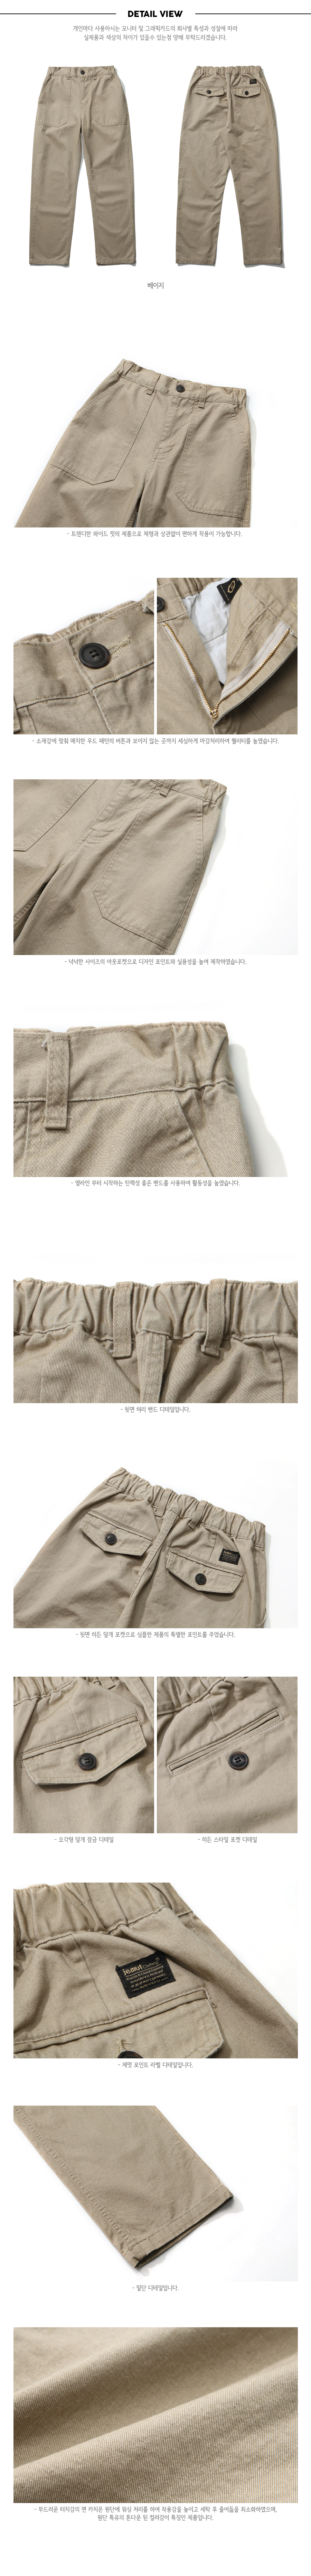 20190207_glory_cotton_pants_detail_beige_kj.jpg